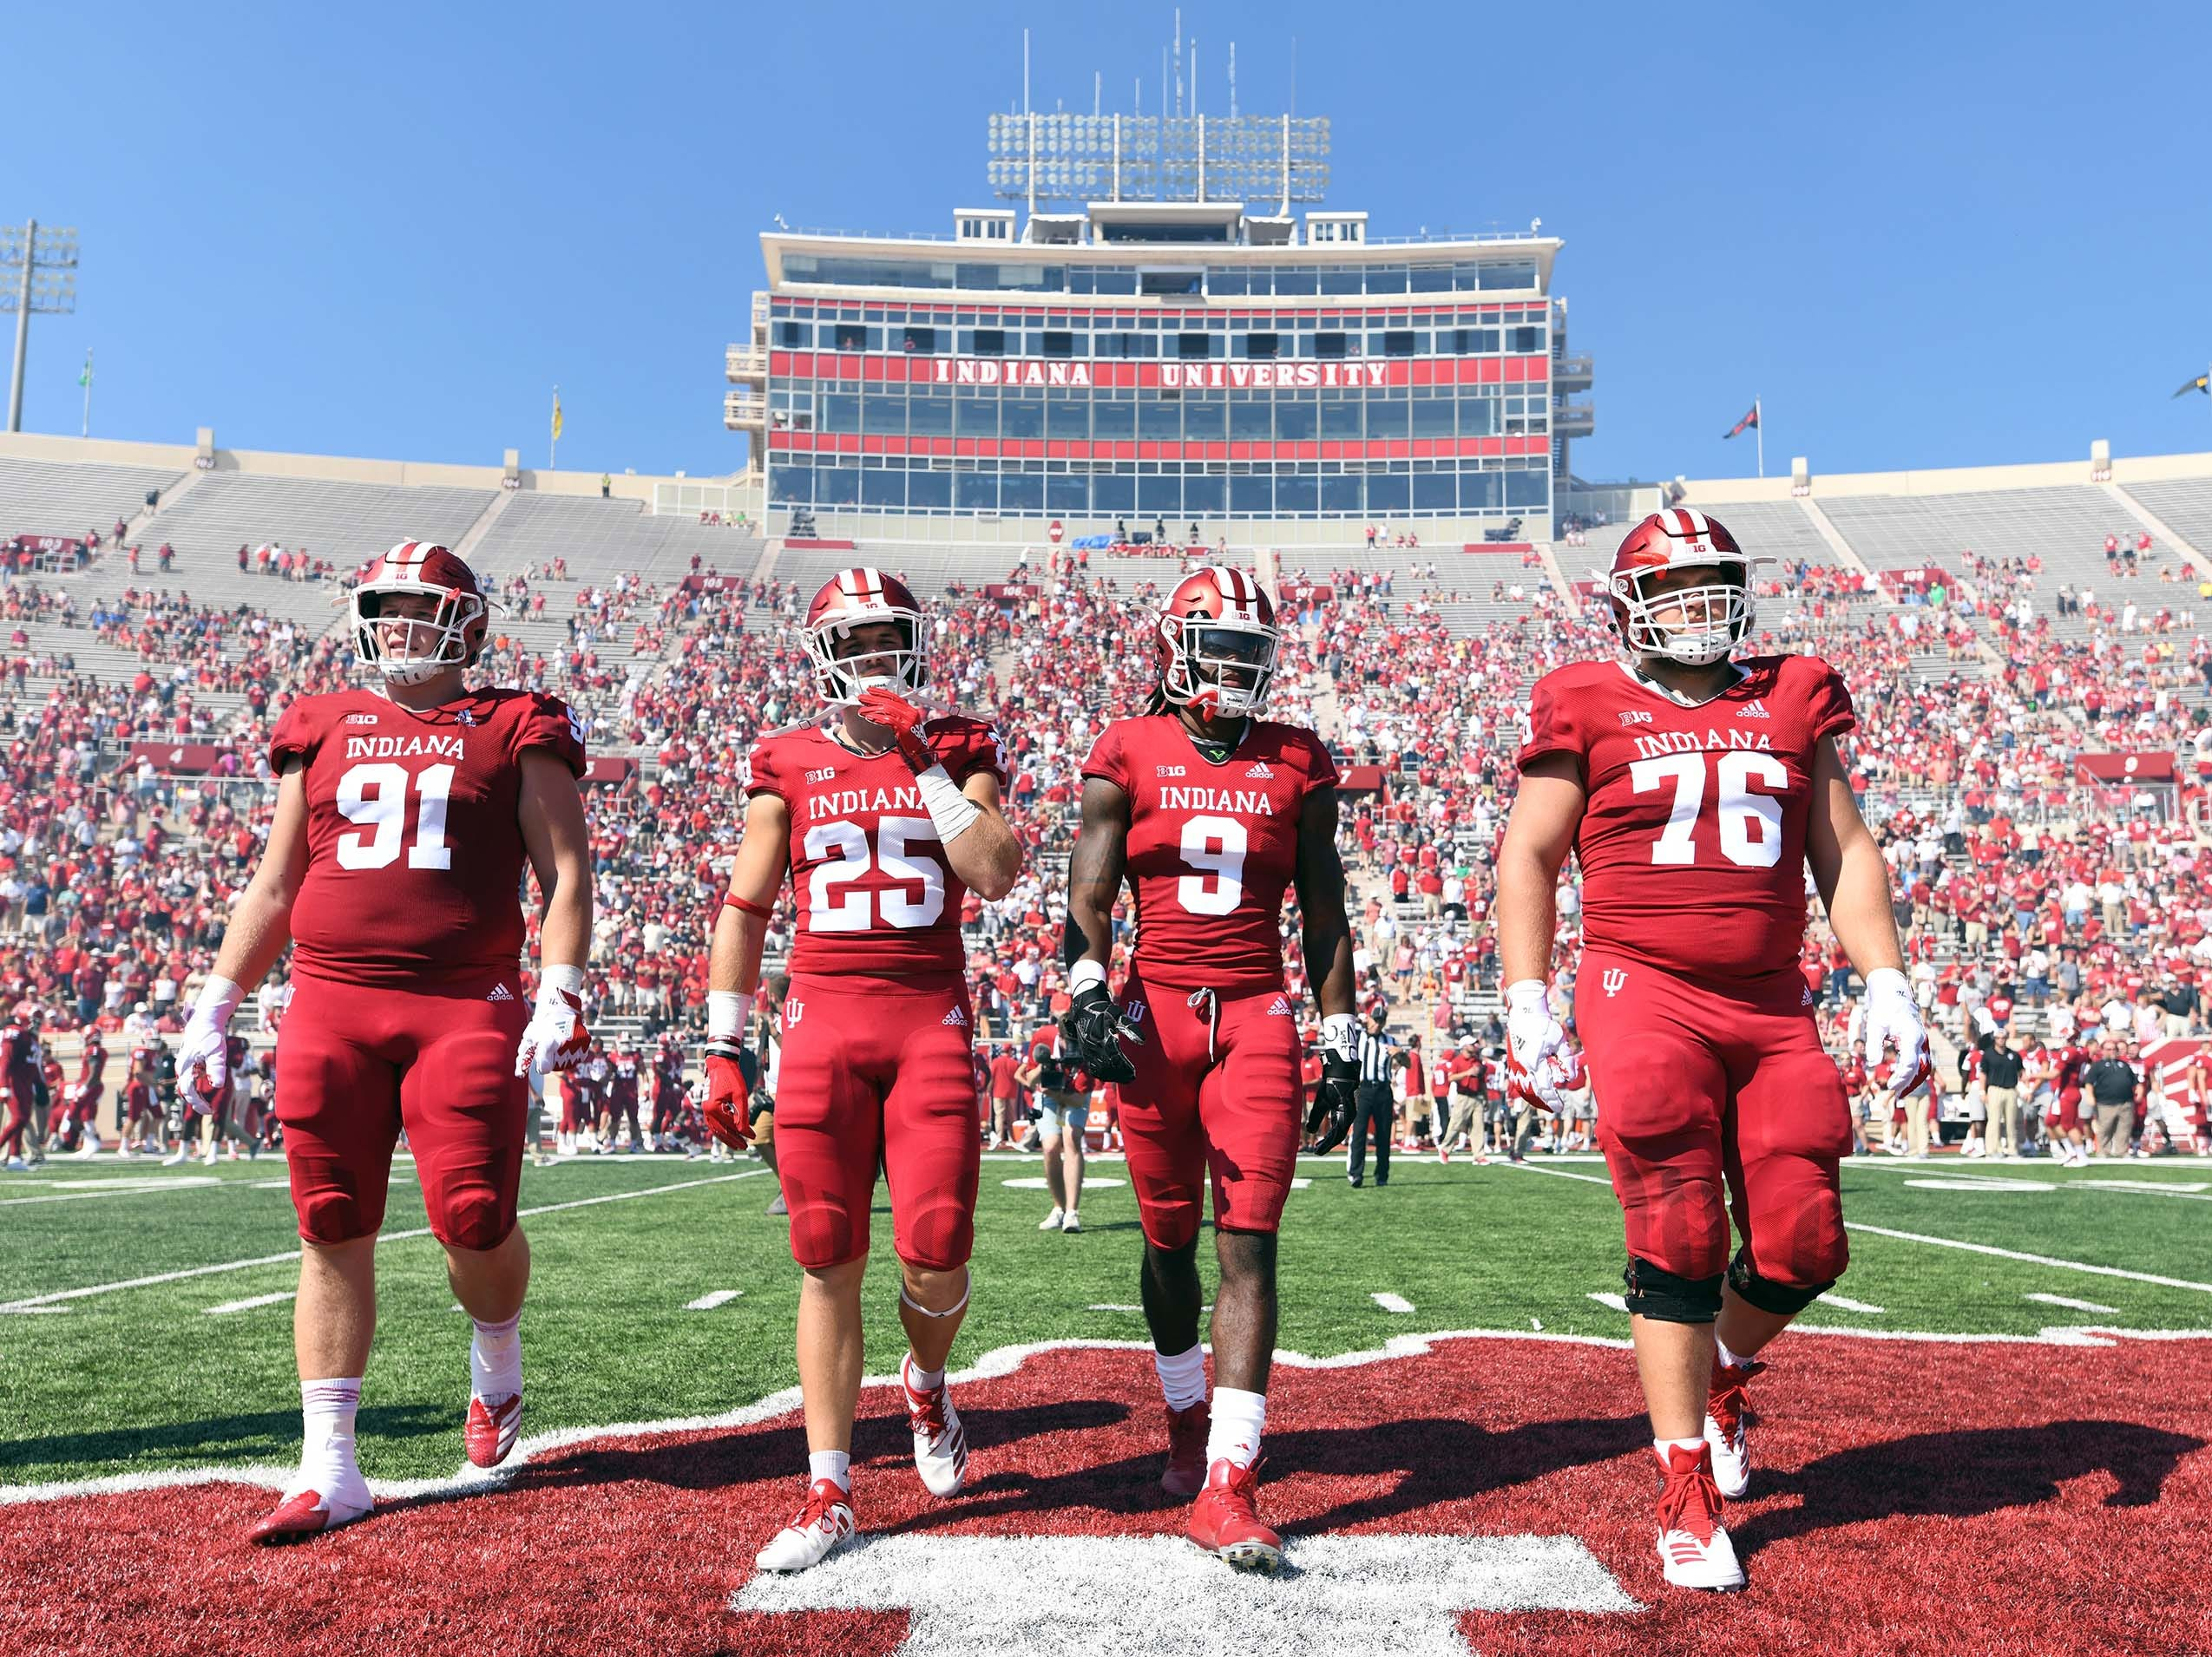 The Indiana Hoosiers captains walk to the coin toss prior to the start of the game against Ball State at Memorial Stadium in Bloomington, Ind., on Saturday, Sept. 15, 2018.